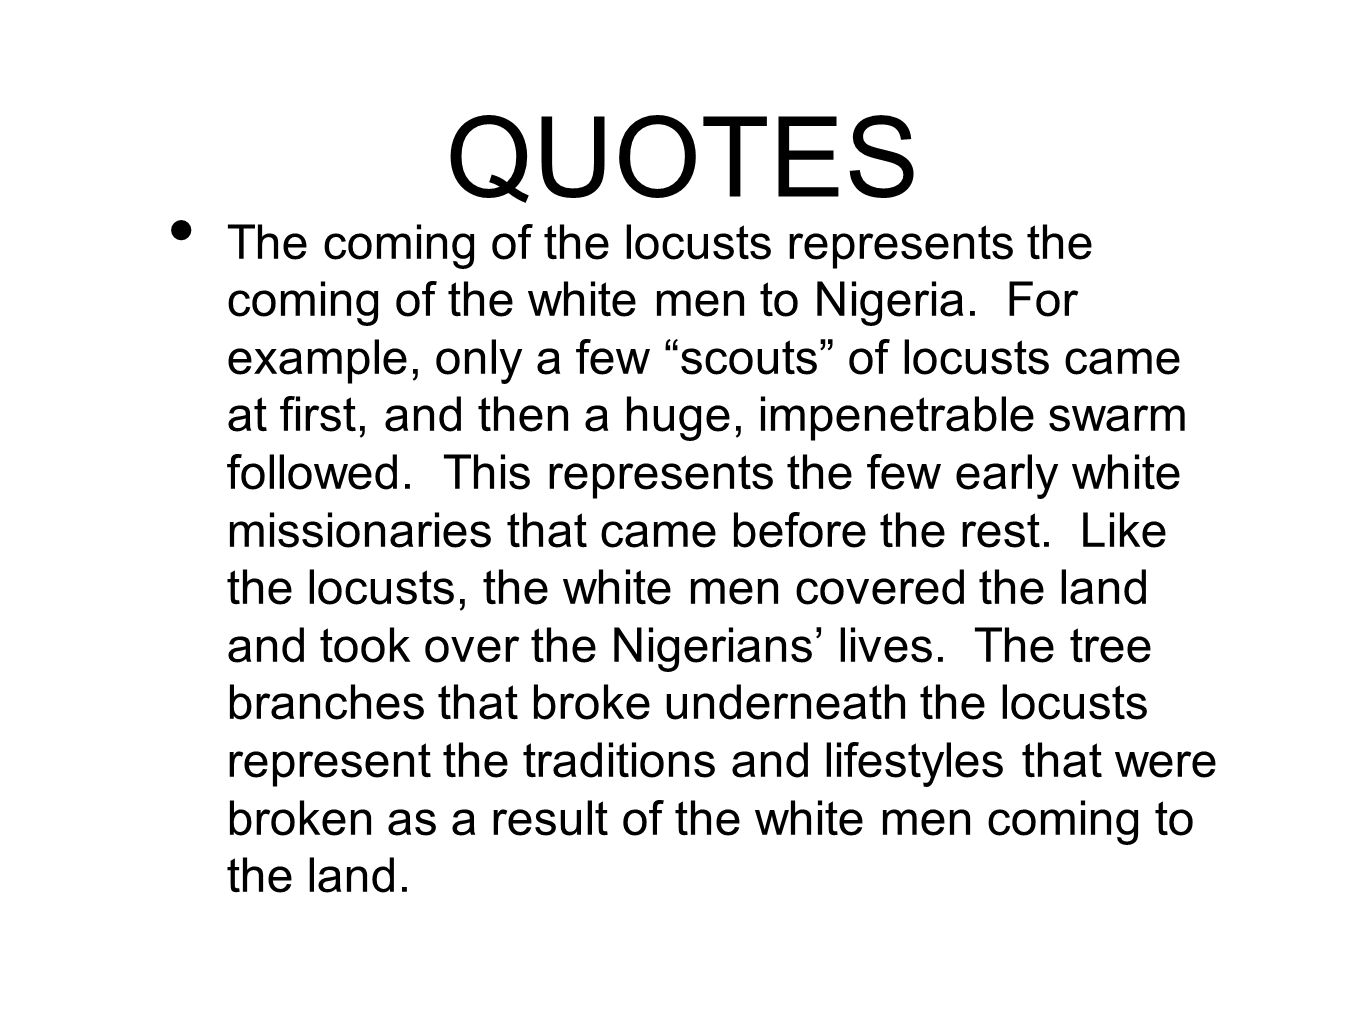 QUOTES The coming of the locusts represents the coming of the white men to Nigeria.